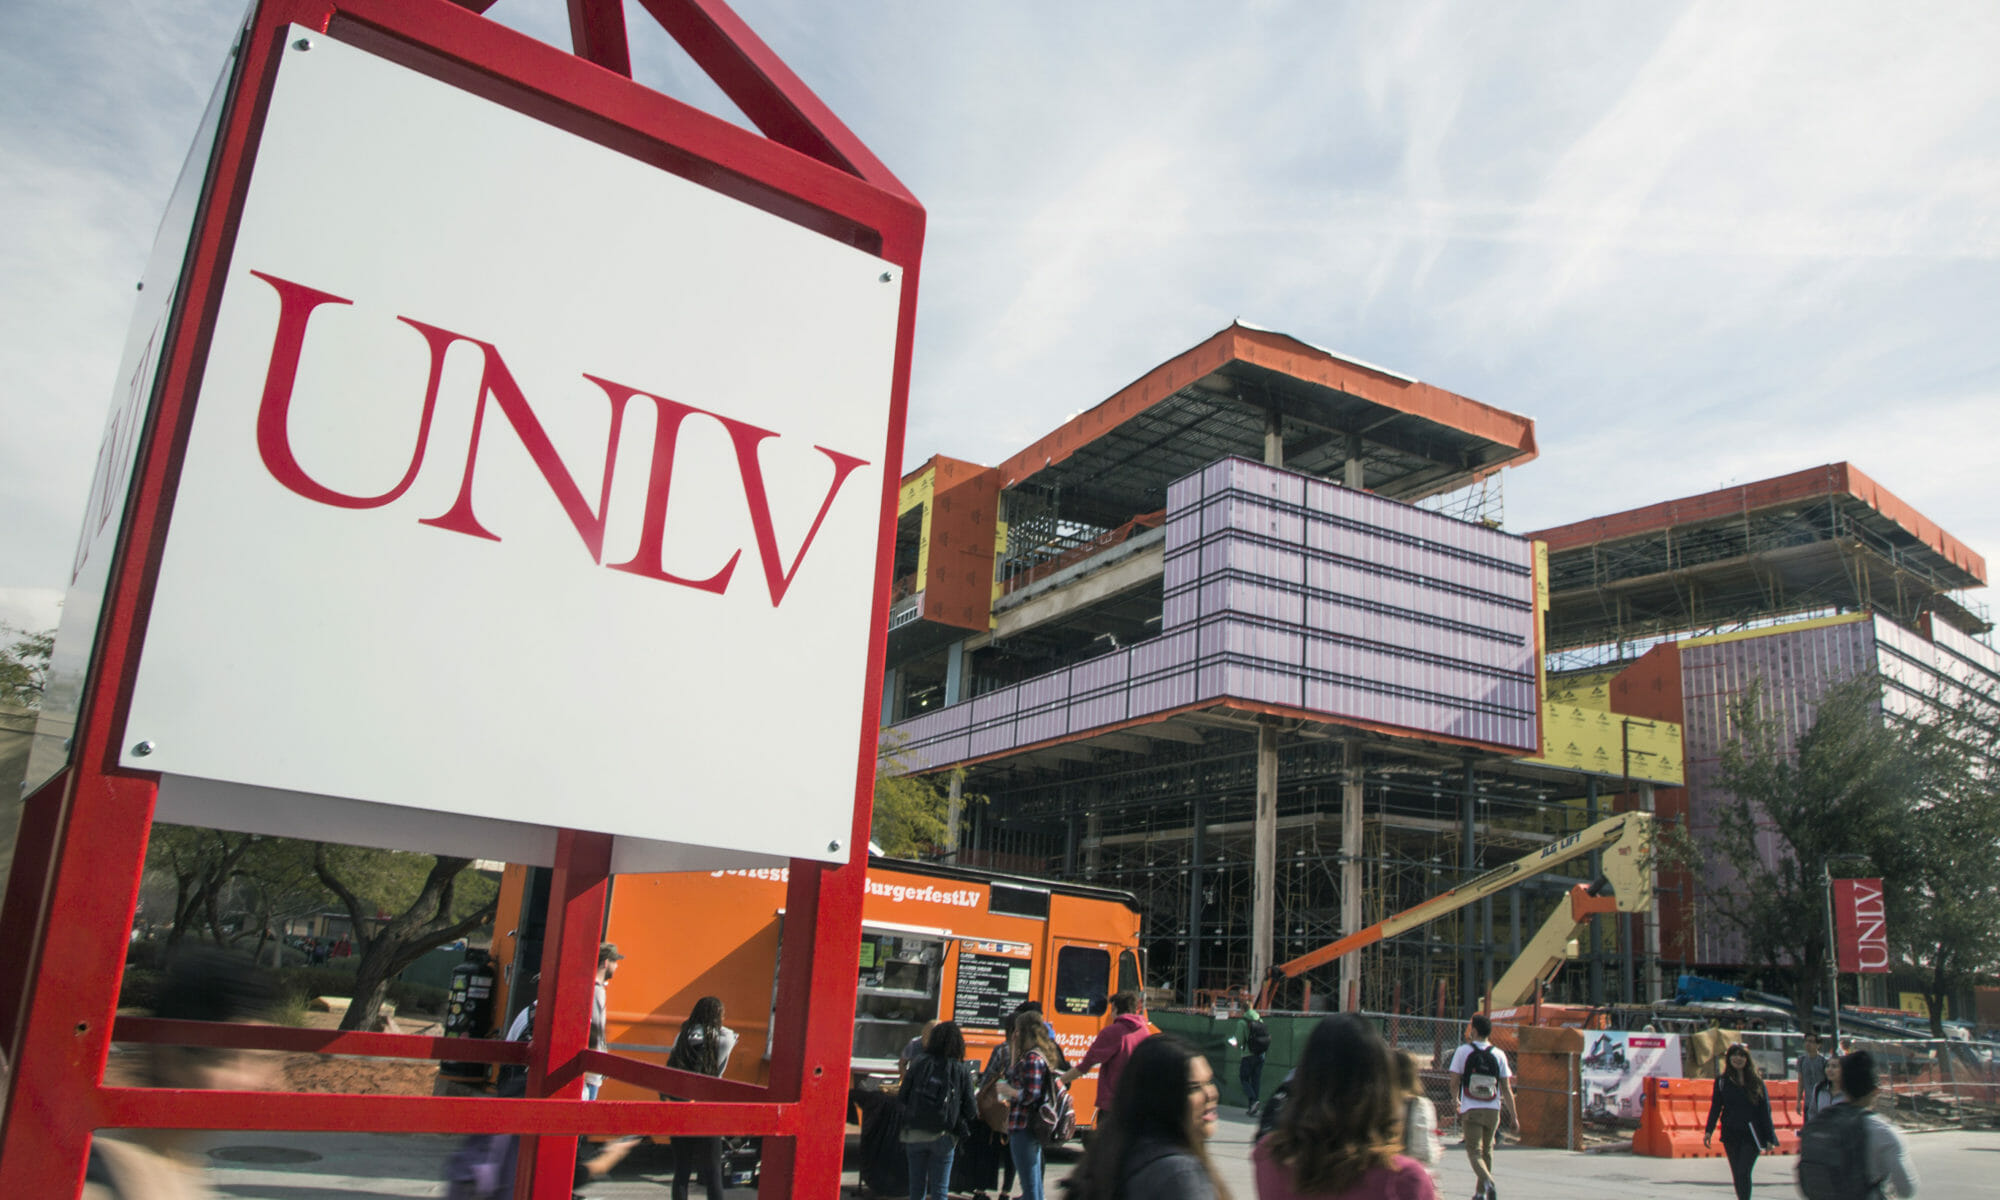 The UNLV Sign in front of the Hospitality Hall under construction